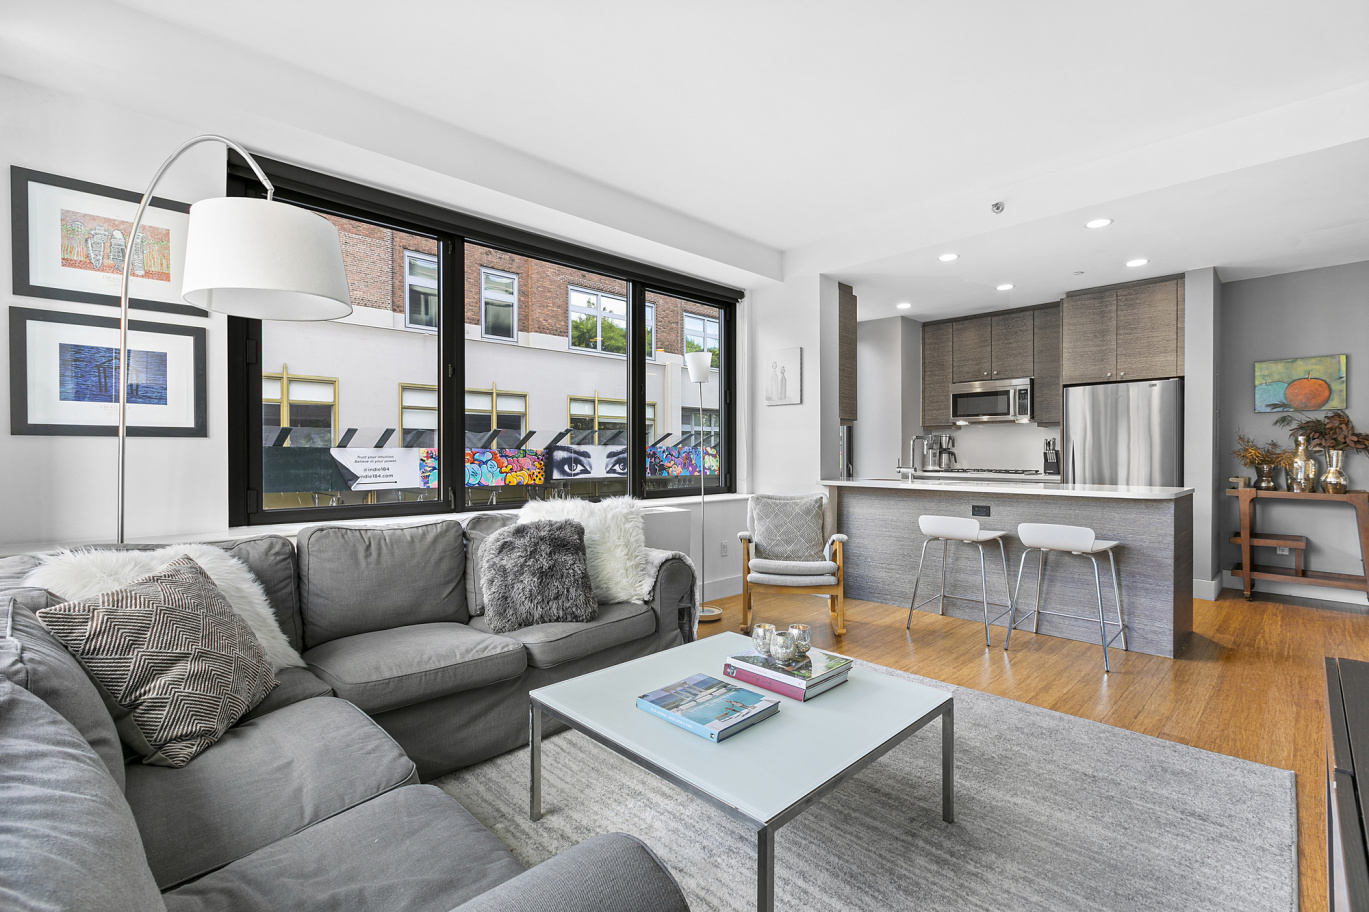 Apartment for sale at 305 West 16th Street, Apt 2-H